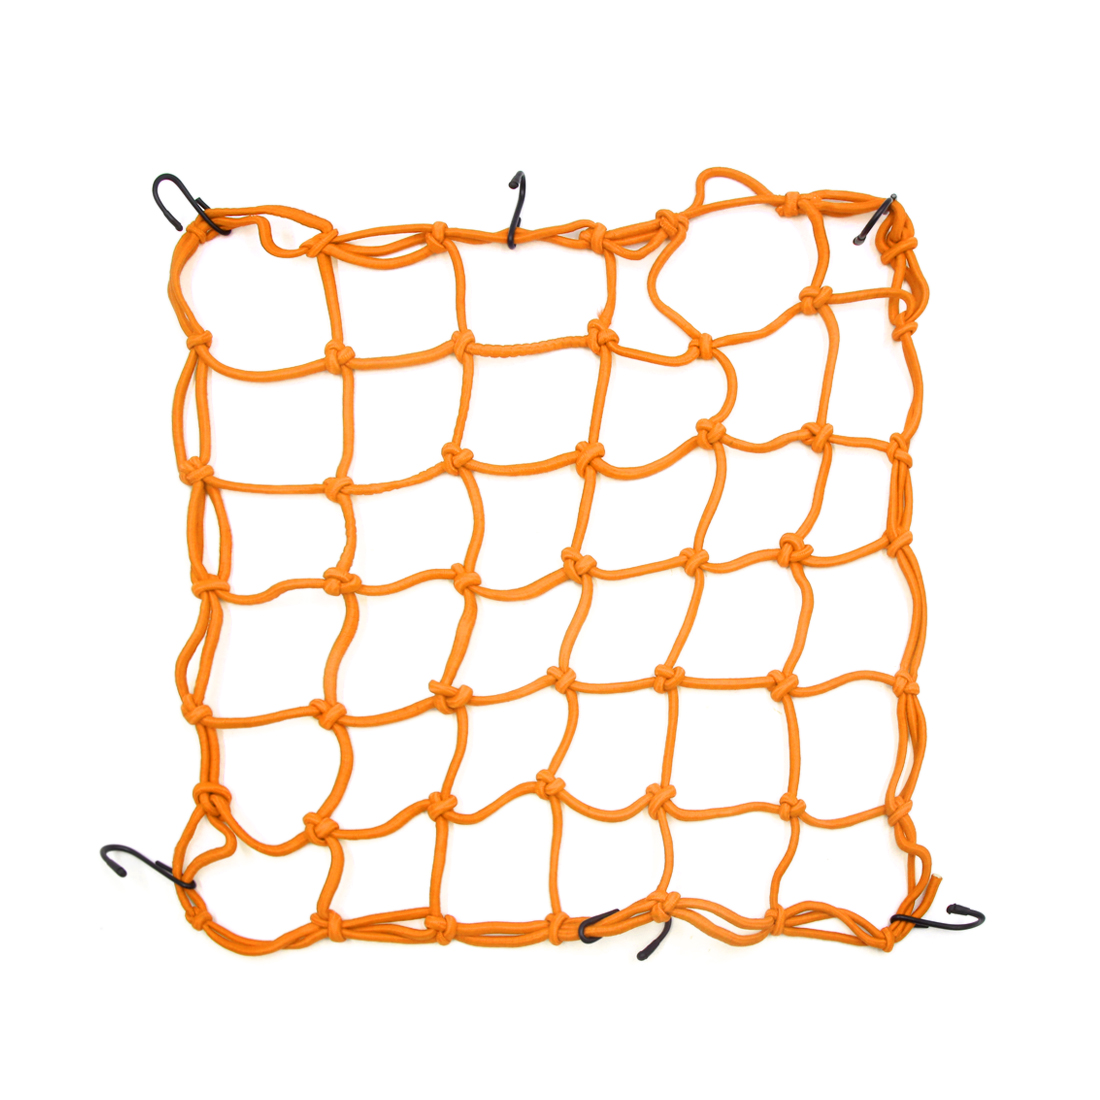 40 x 40cm Orange Bungee Cargo Luggage Mesh Auto Car Motorcycle Goods Net